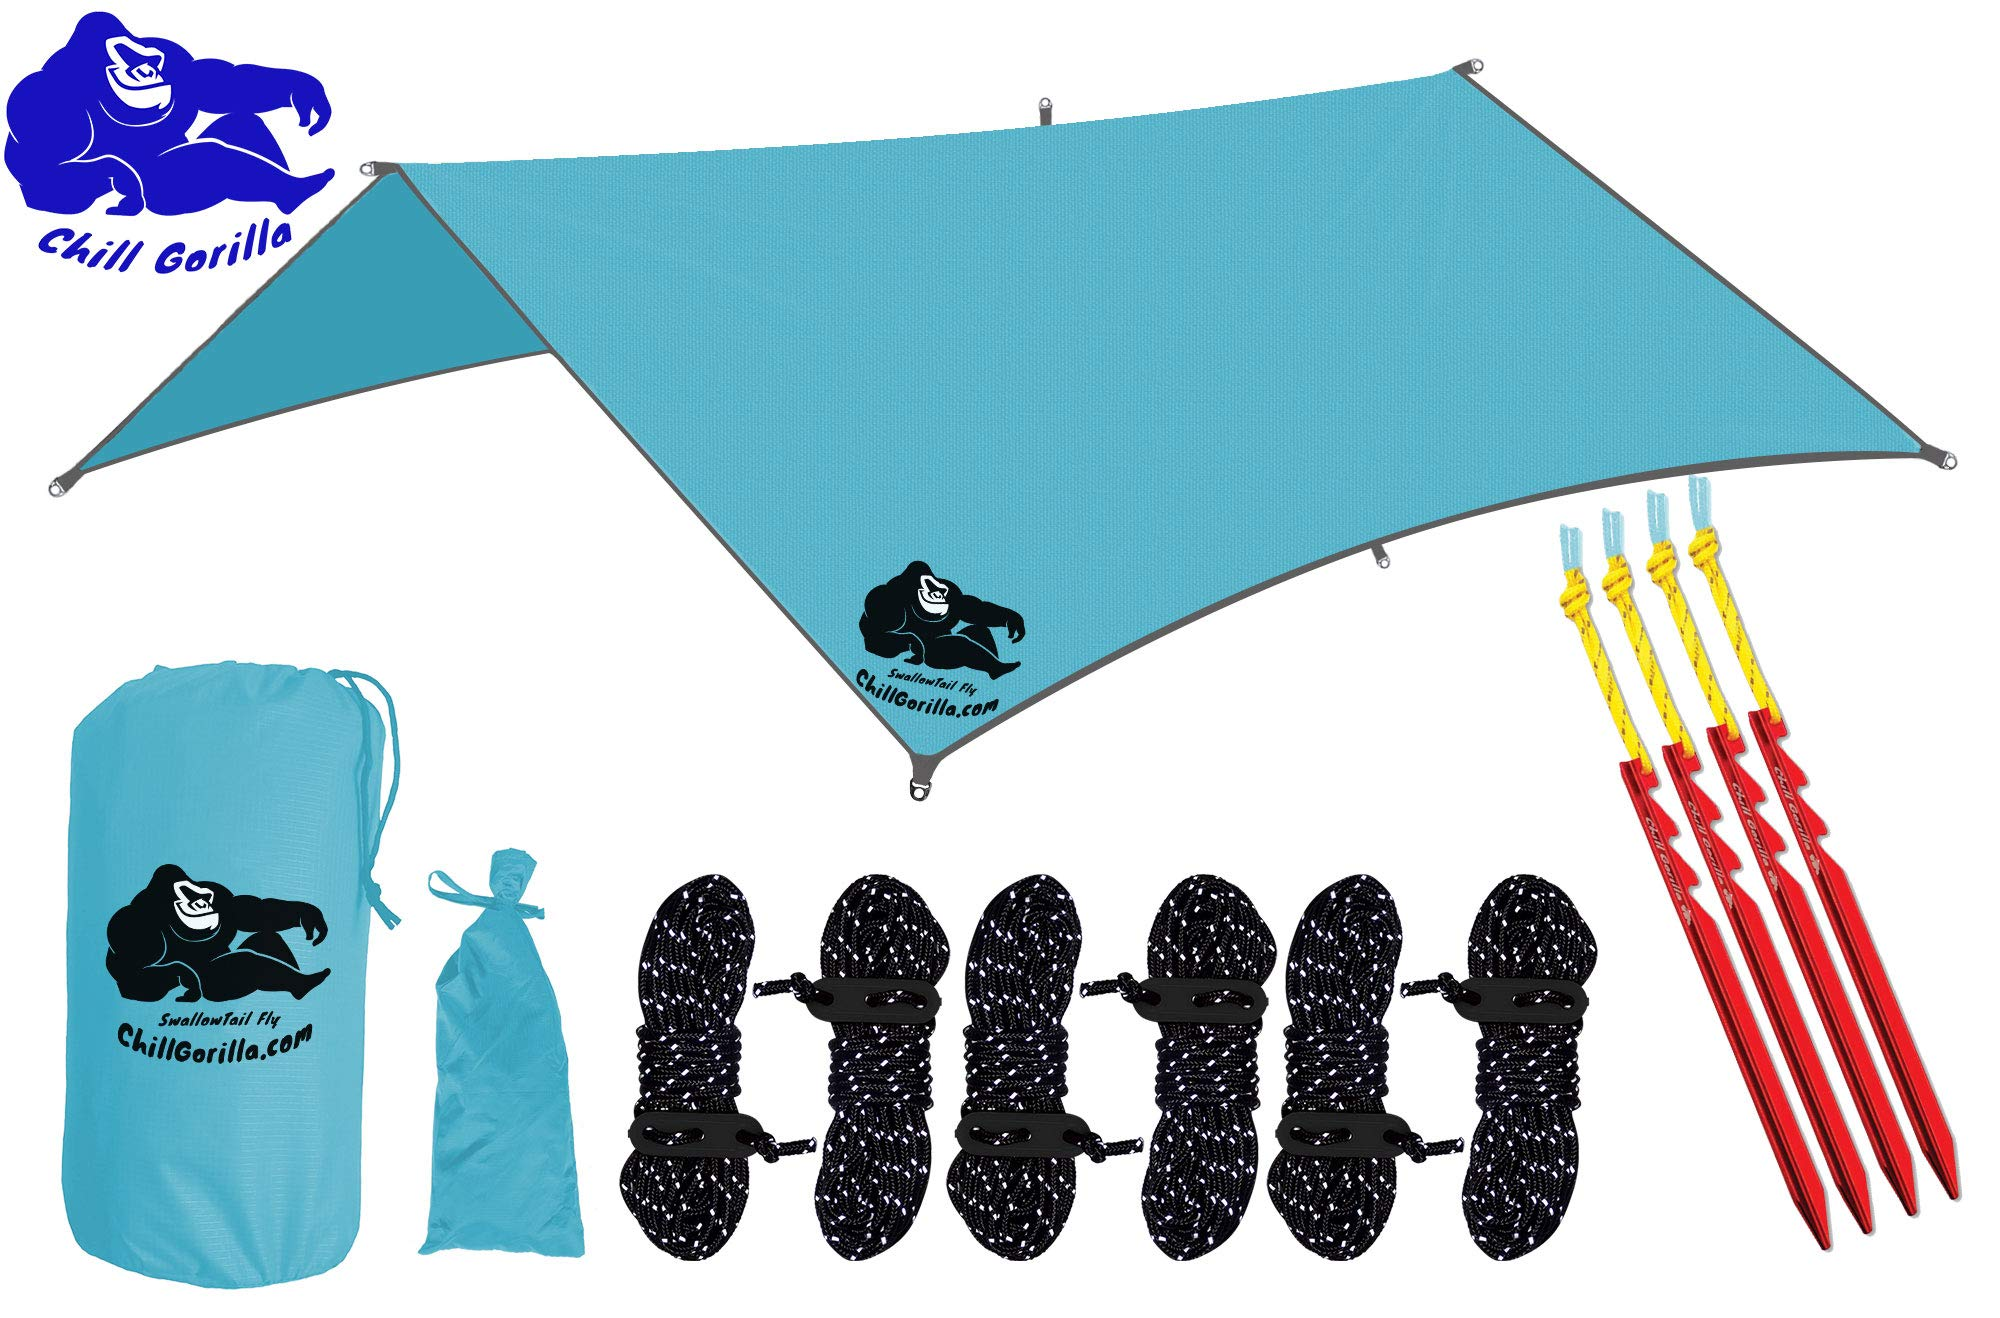 Chill Gorilla 10x10 Swallowtail Hammock Rain Fly Camping Tarp. Ripstop Nylon. 170'' Centerline. Stakes, Ropes & Tensioners Included. Camping Gear & Accessories. Perfect Hammock Tent. Blue by Chill Gorilla